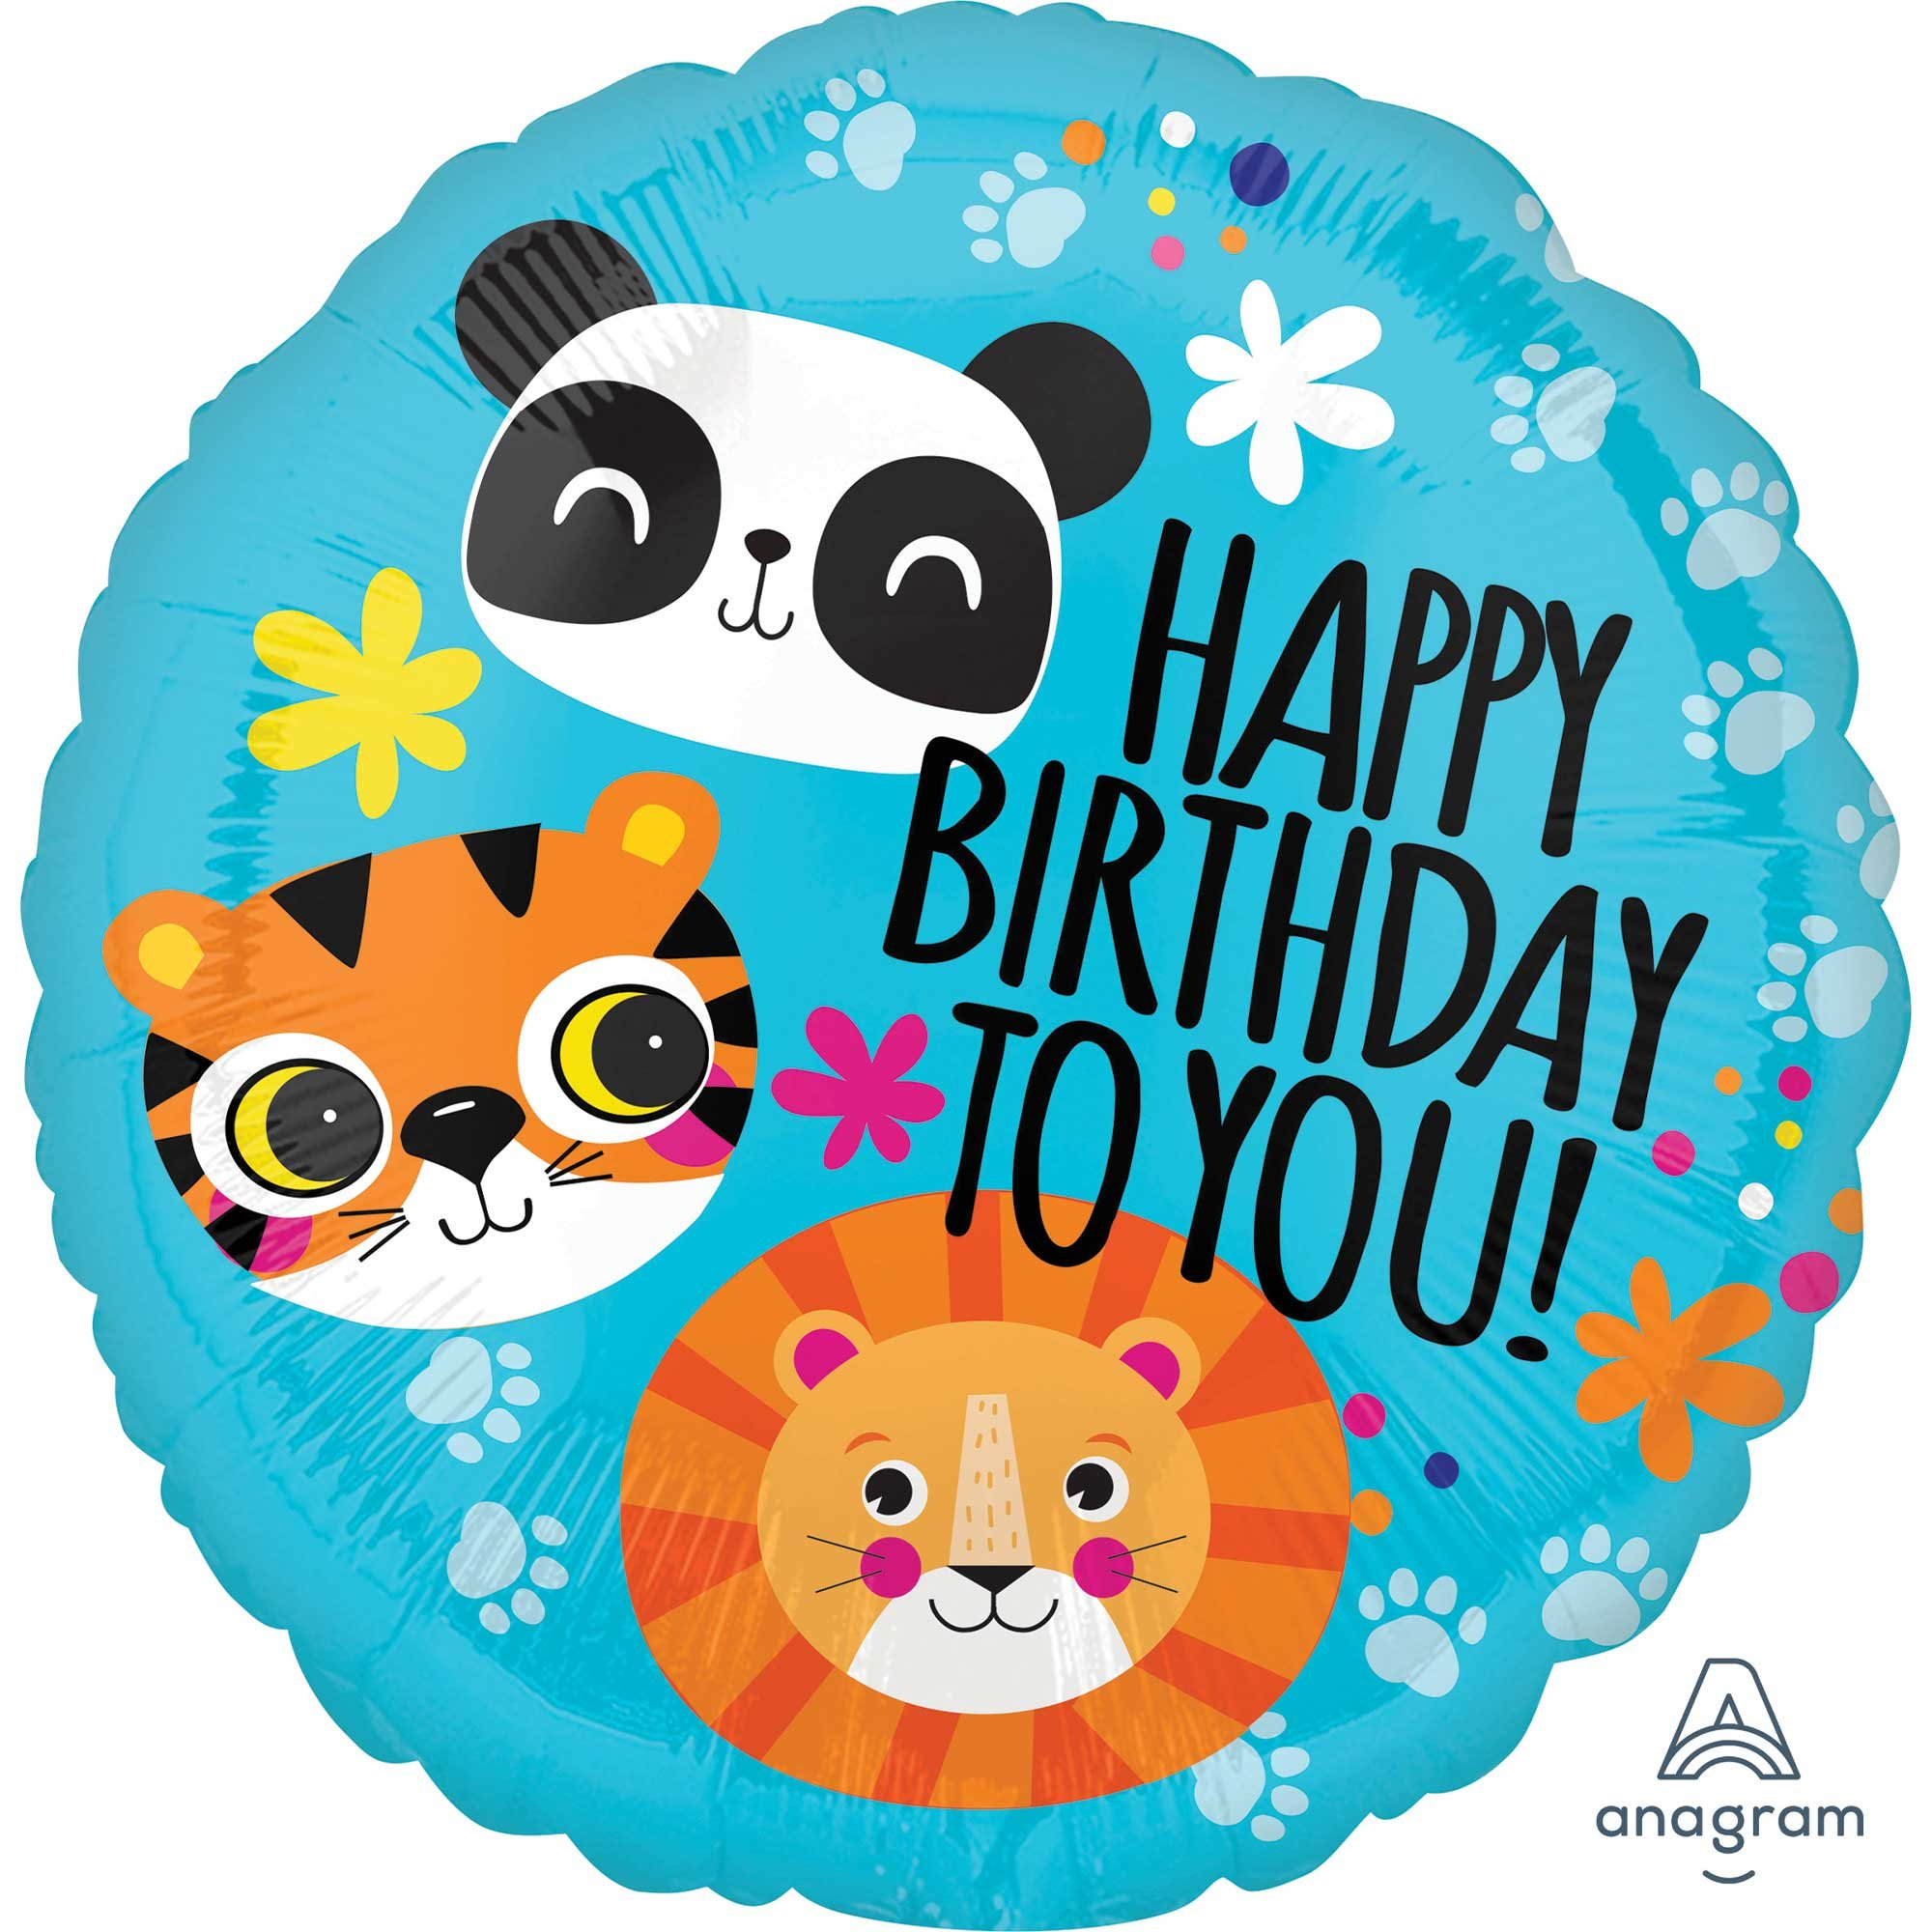 45cm Standard HX Lion, Tiger and Panda Happy Birthday To You S40